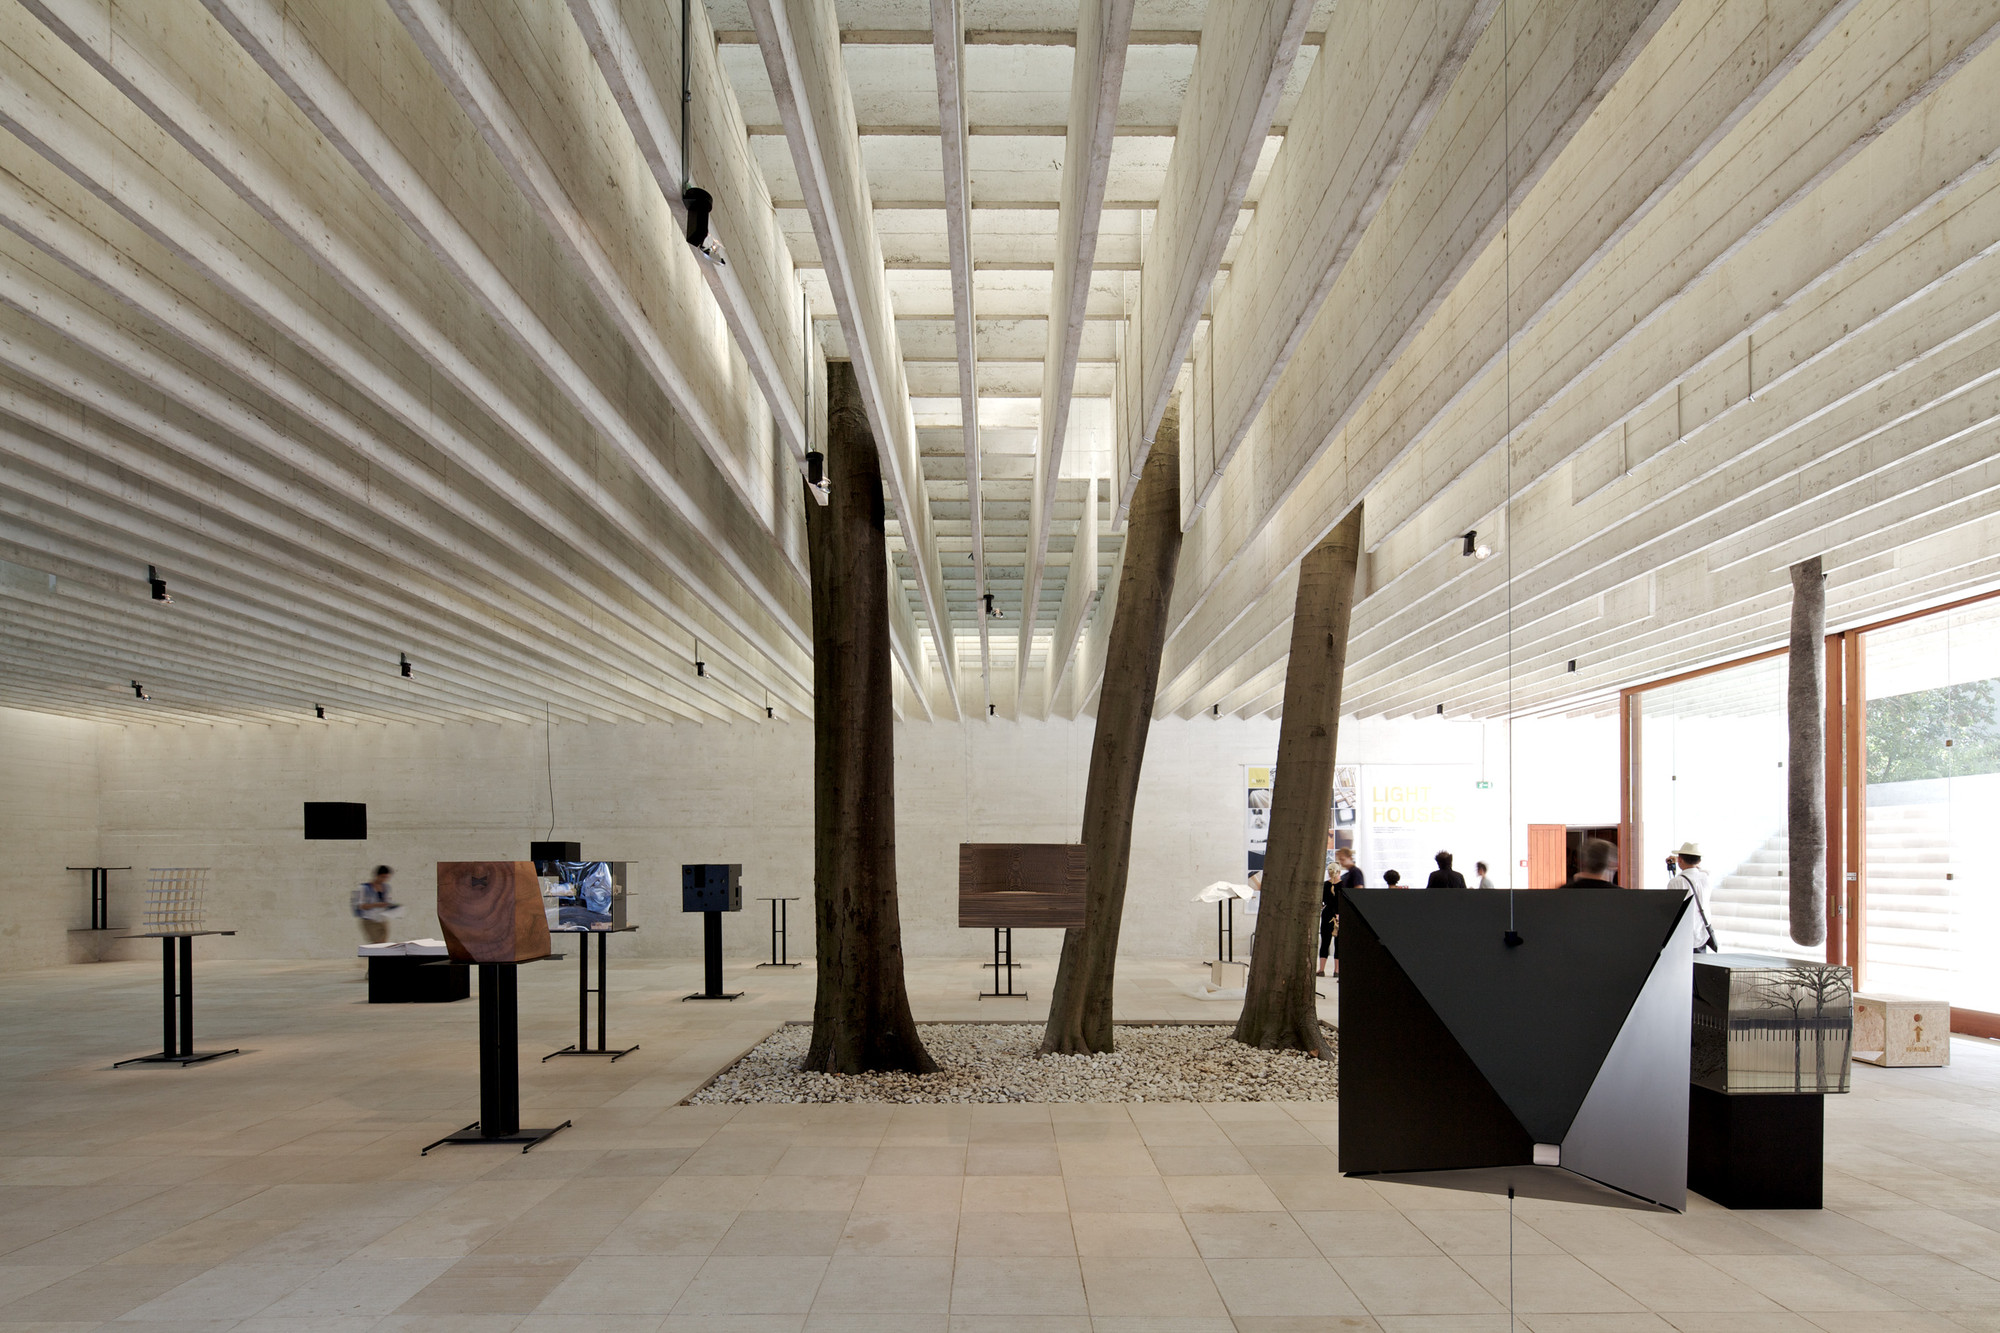 Venice Biennale 2014: Nordic Pavilion to Study Architecture's Role in East African Independence